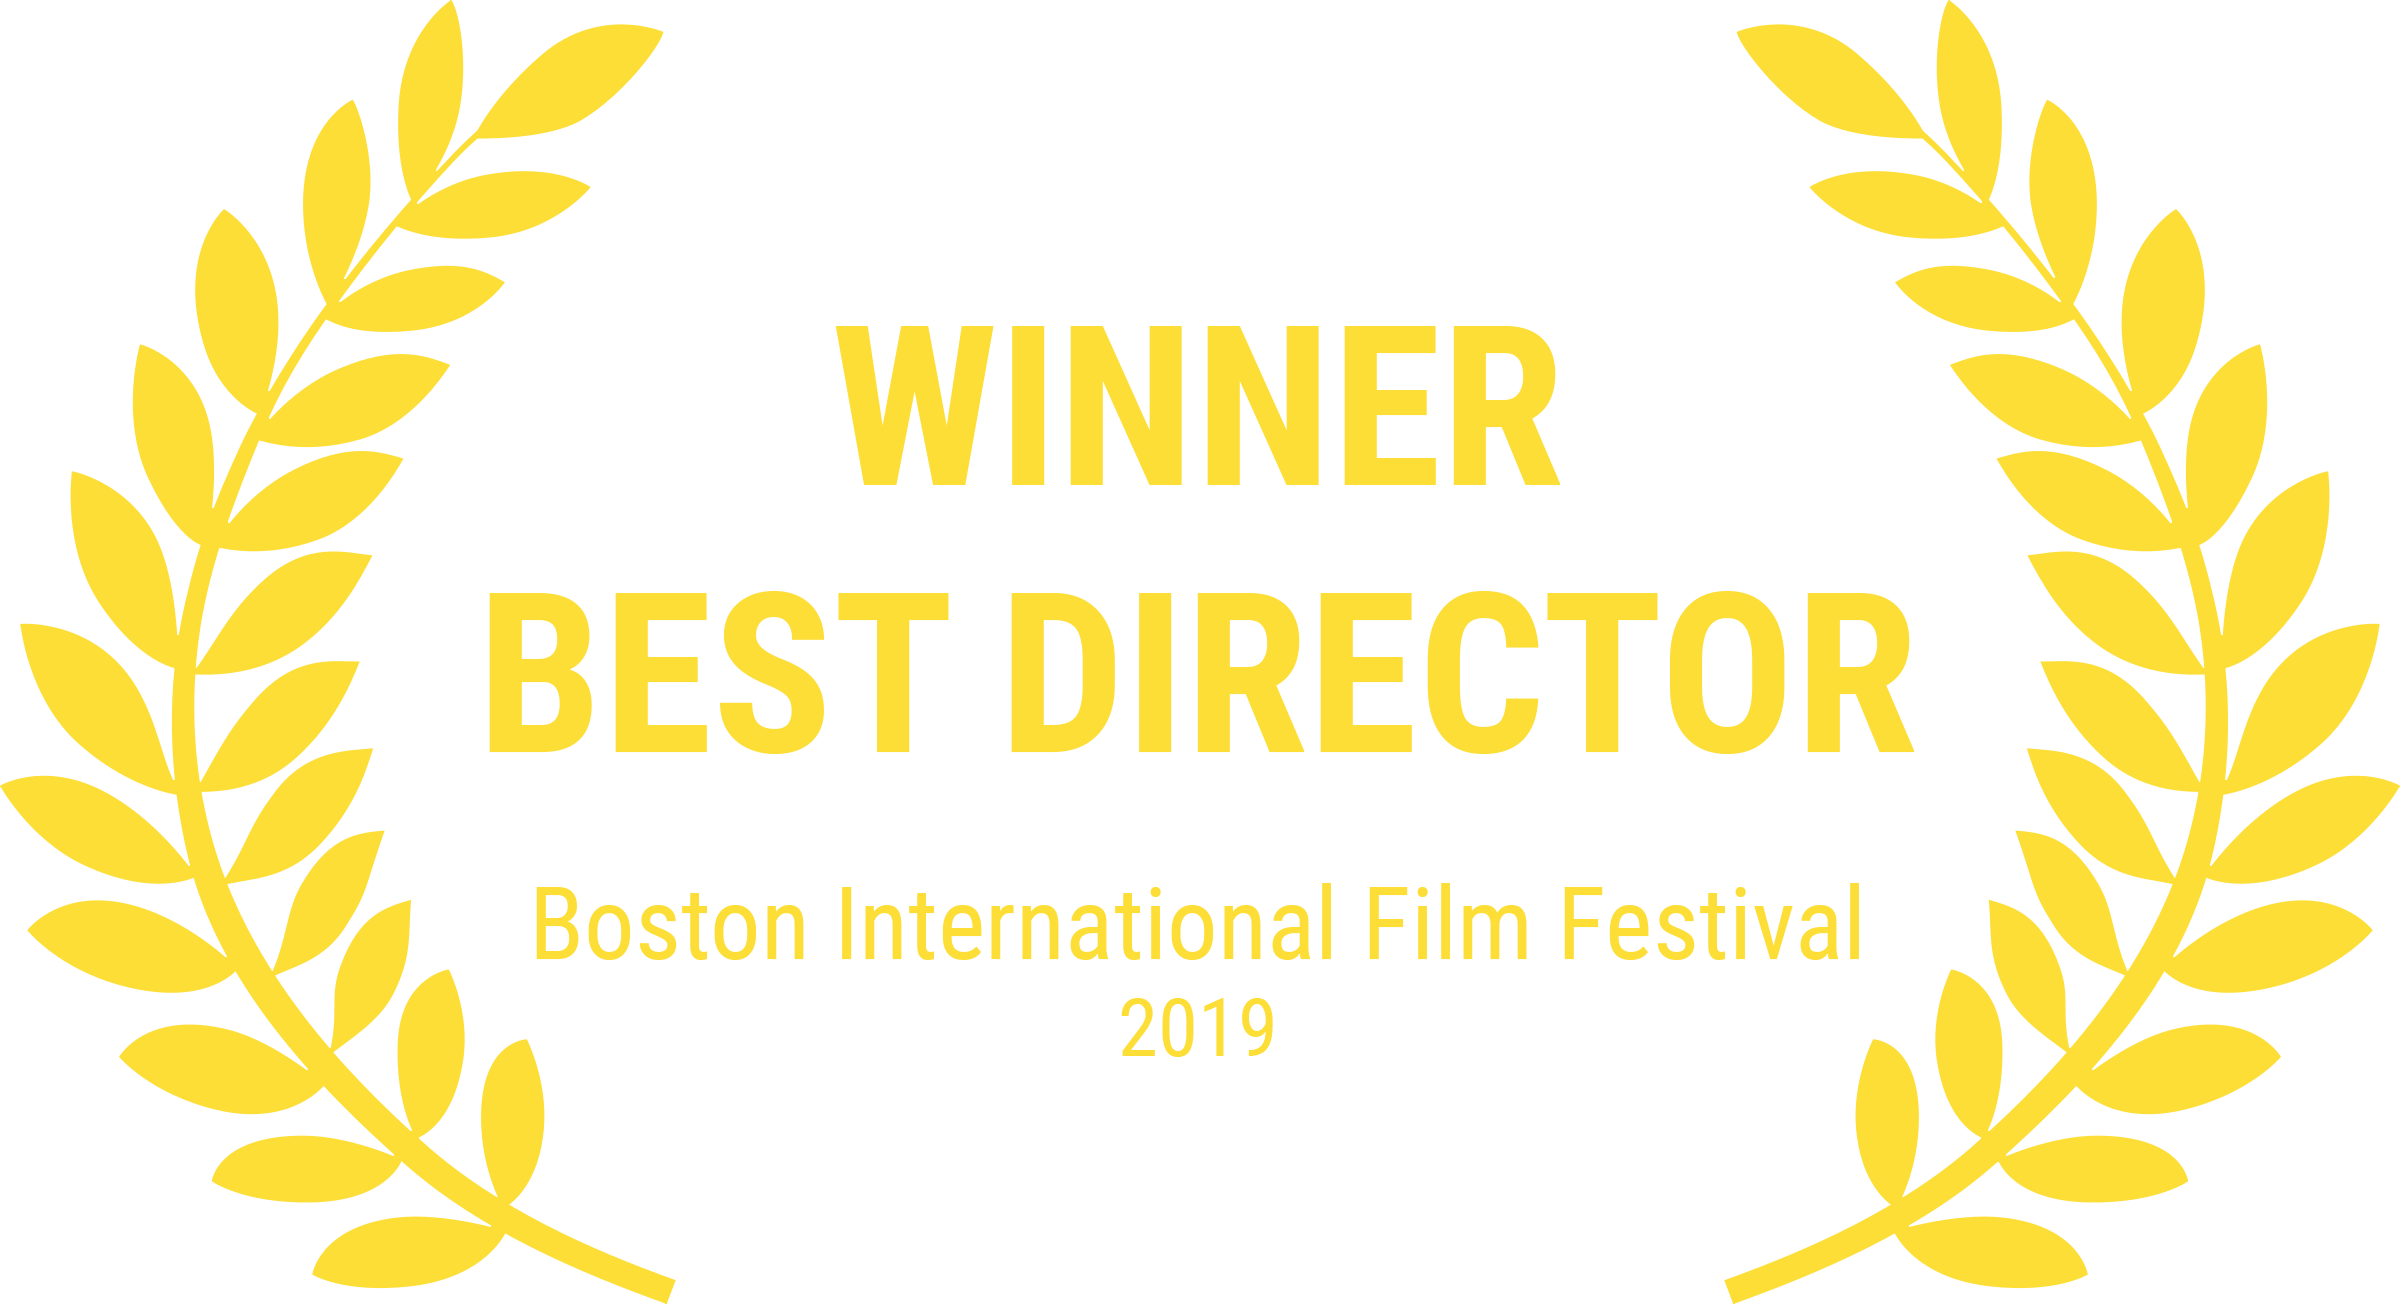 Low Low - Winner Best Director Nick Richey - Boston International Film Festival 2019